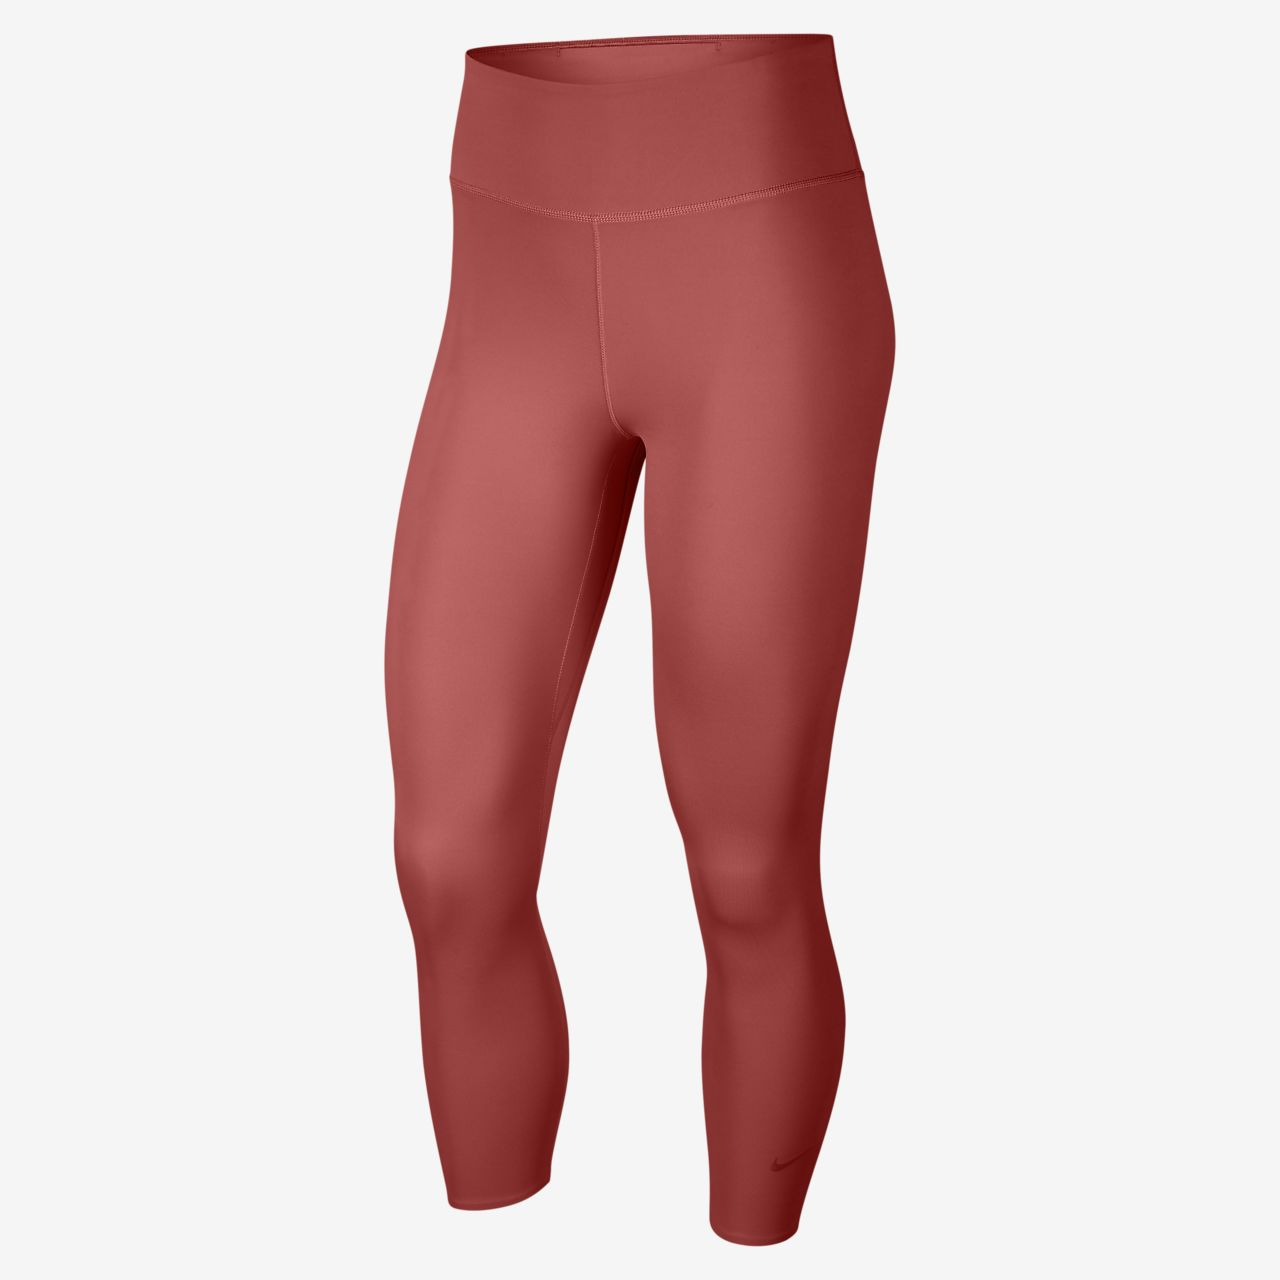 Nike One Luxe Women's Crops